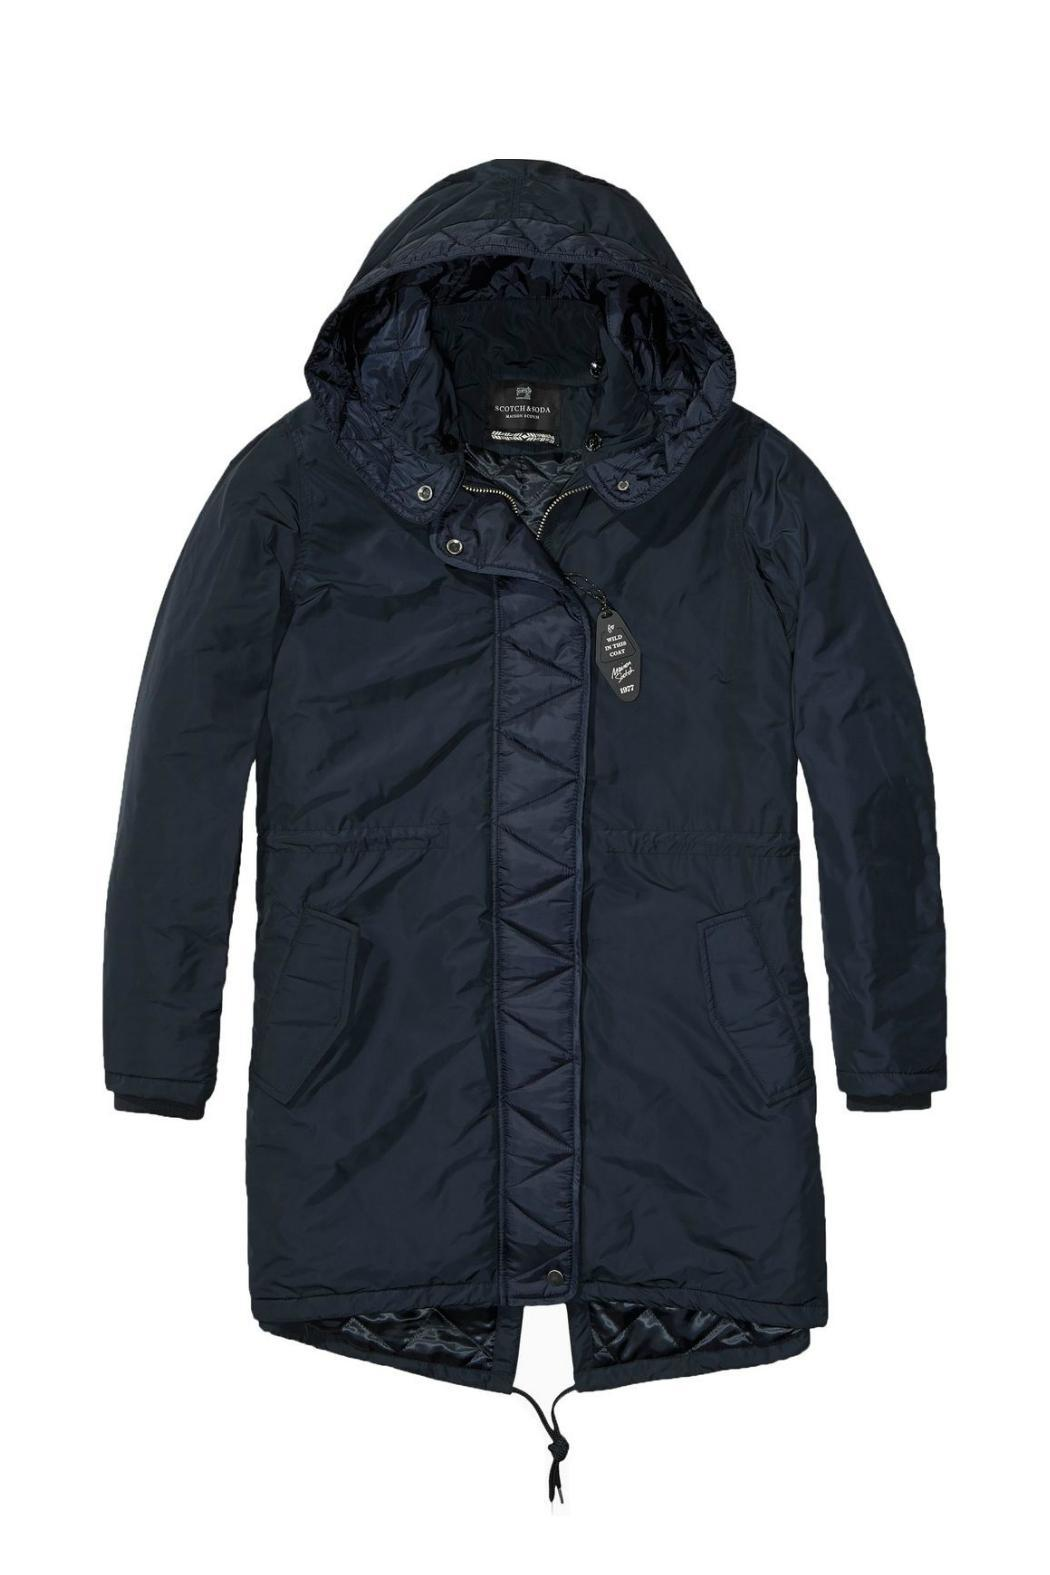 maison scotch windbreaker parka from canada by tea leaf. Black Bedroom Furniture Sets. Home Design Ideas